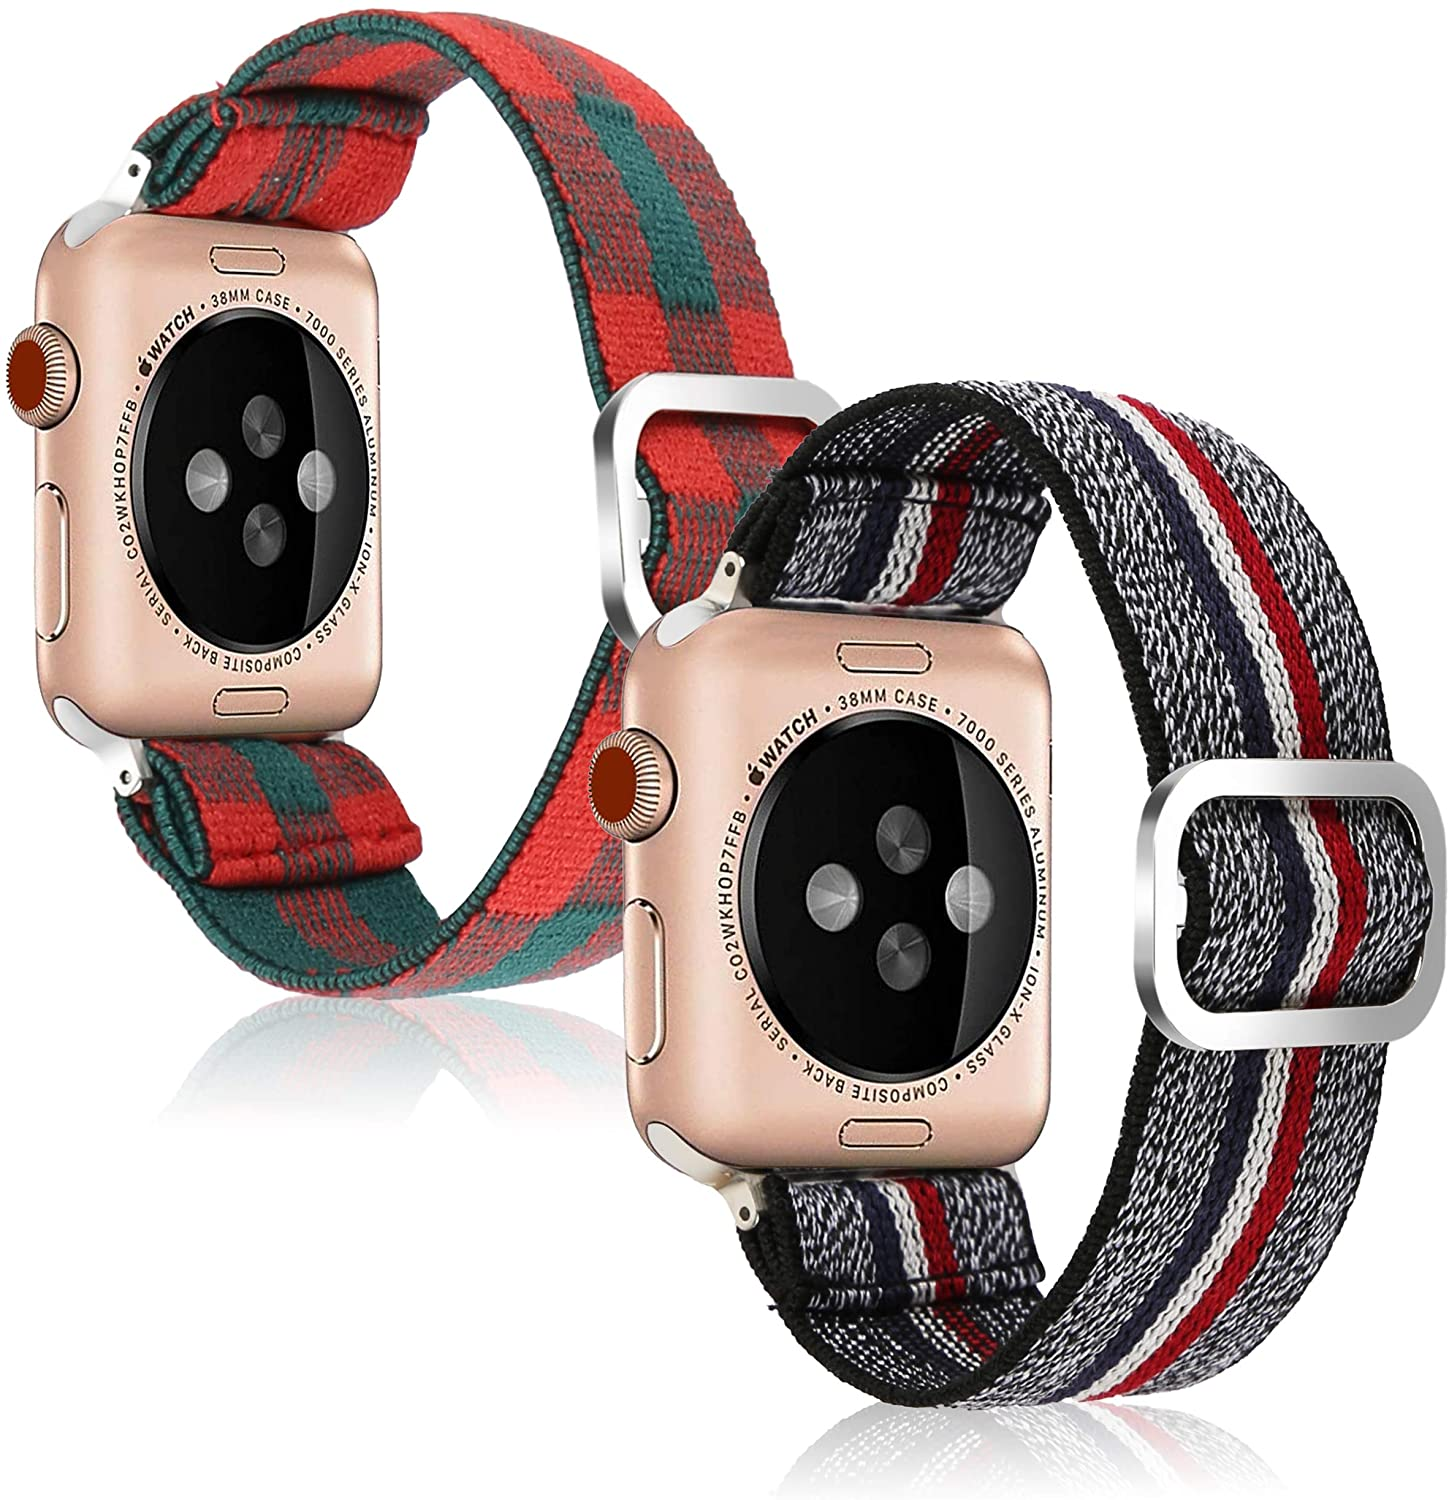 Adjustable Elastic Strap Band for Apple Watch, 38mm 40mm, Men and Boys Band Strap Bracelet Scrunchie Watch Band for iWatch Series 1 2 3 4 5 6 SE(2pack)